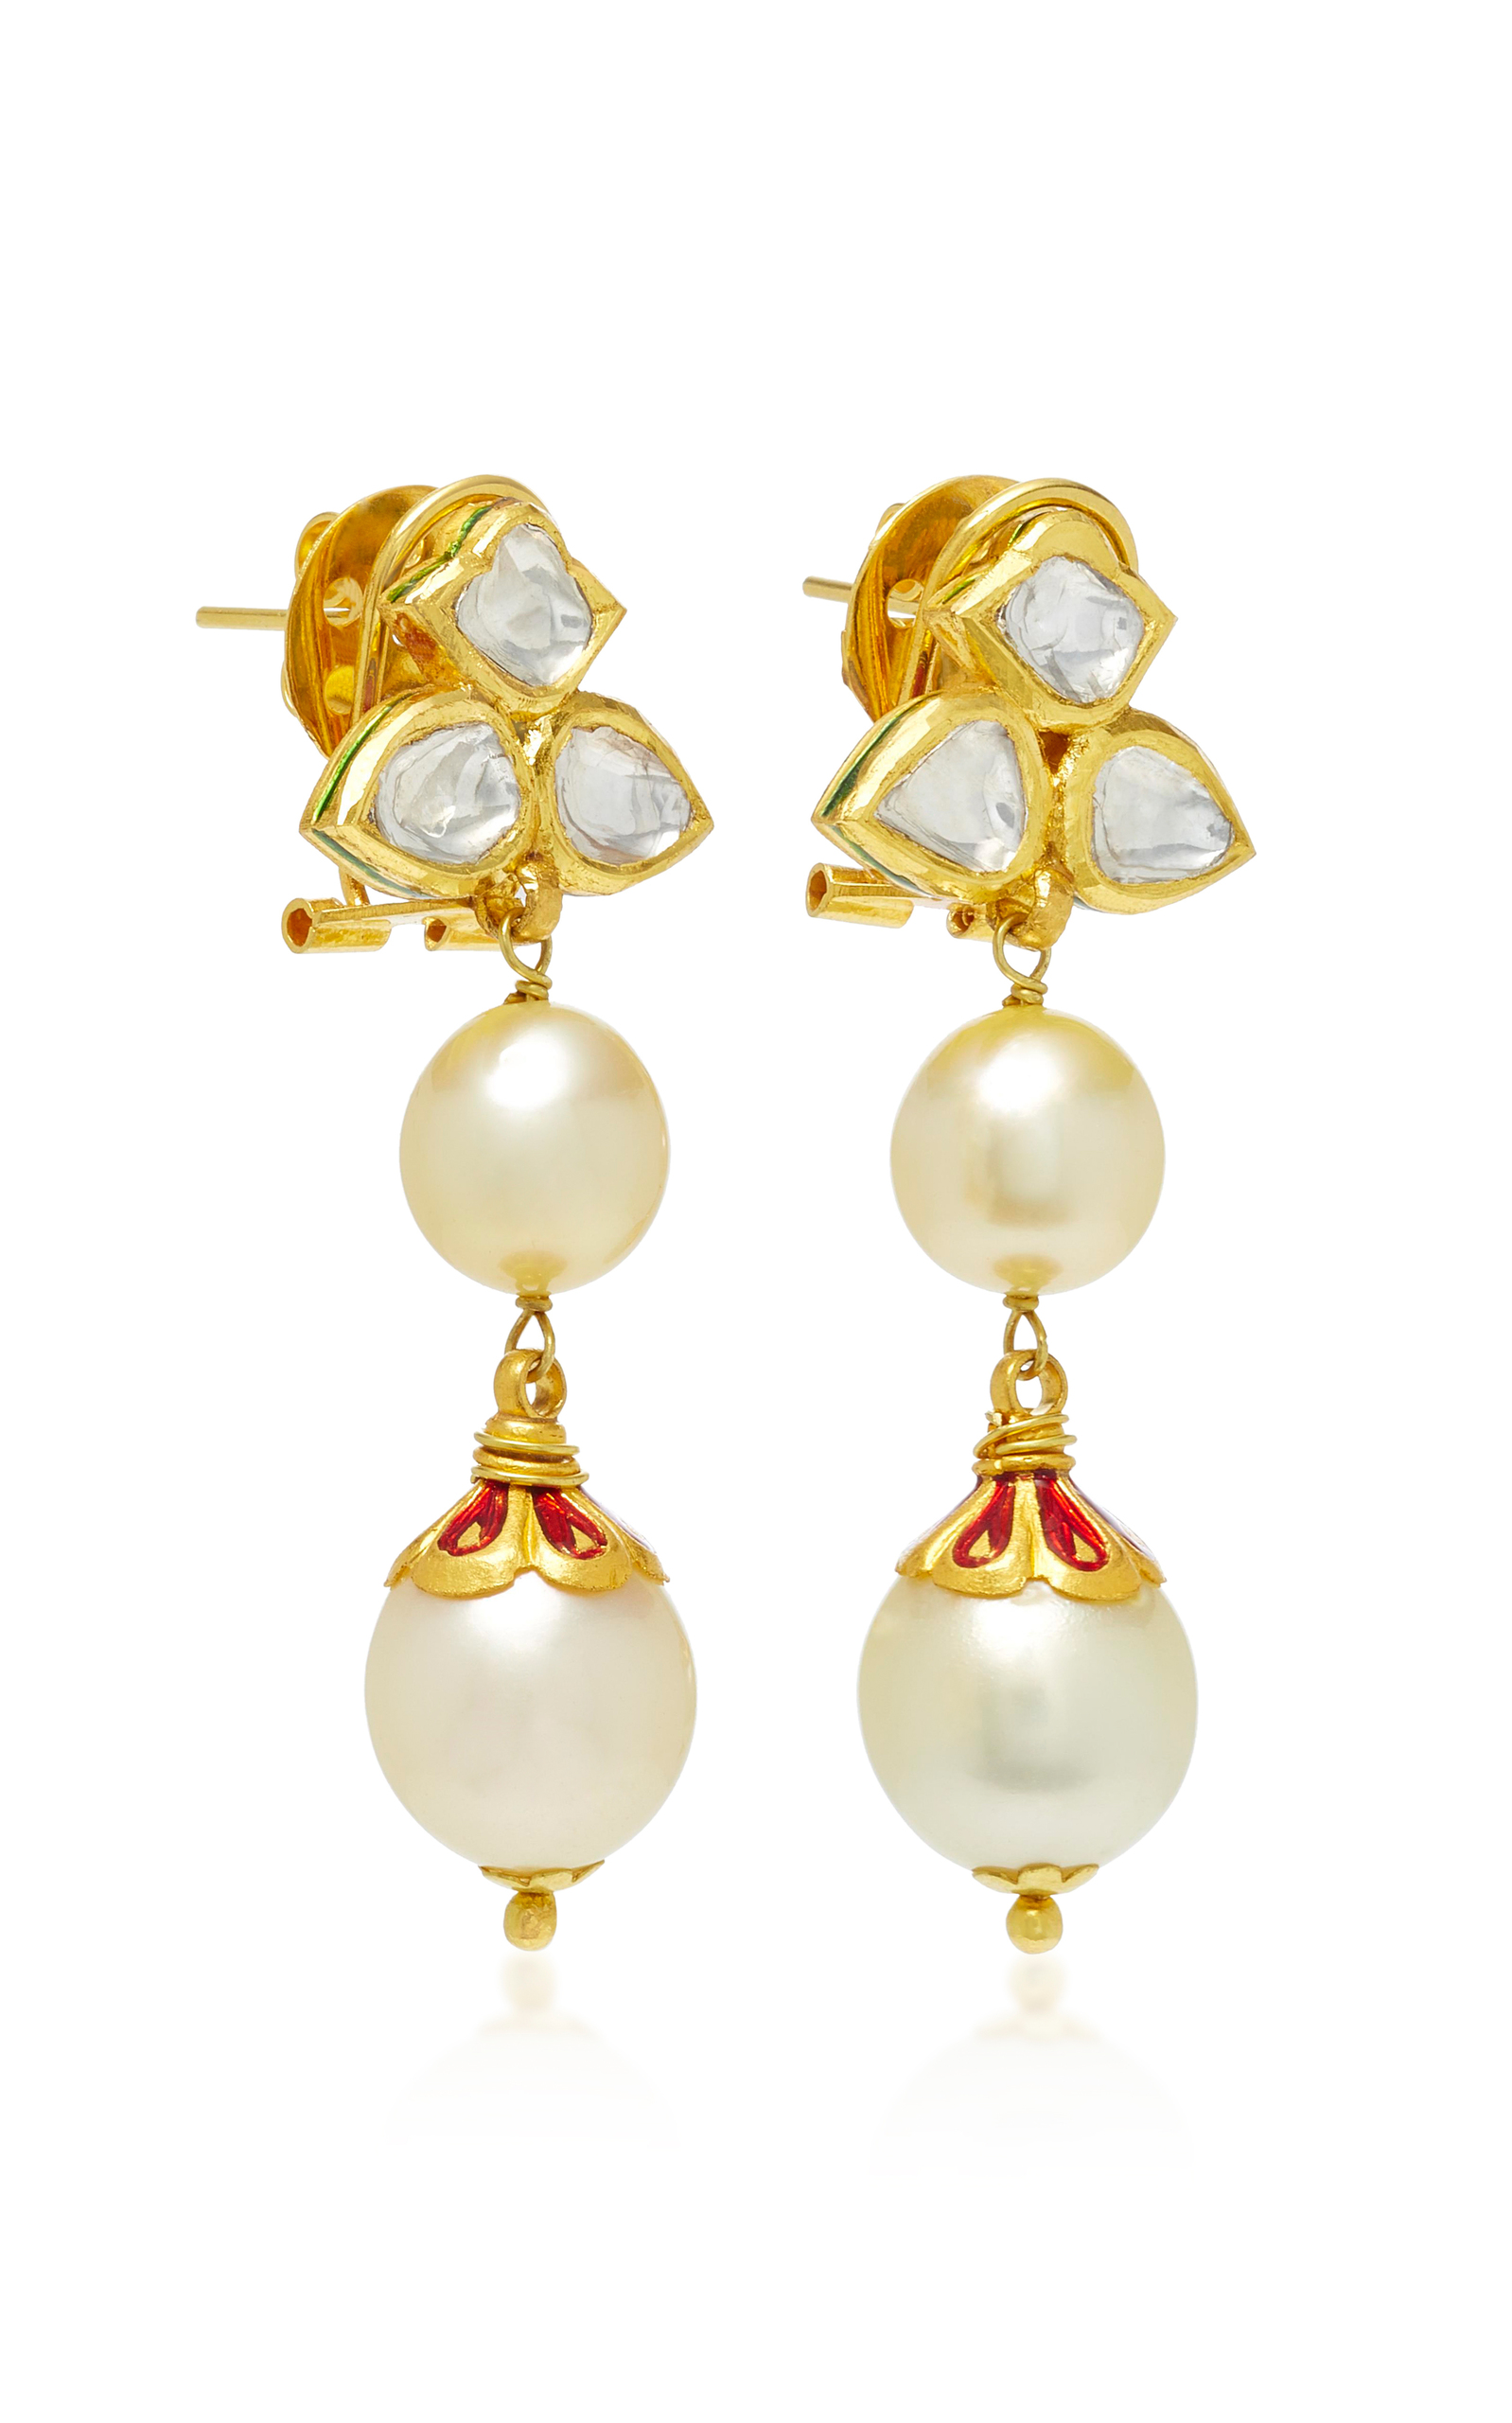 pugliese earrings tangier designers august earring shop gold rosanne side jewelery